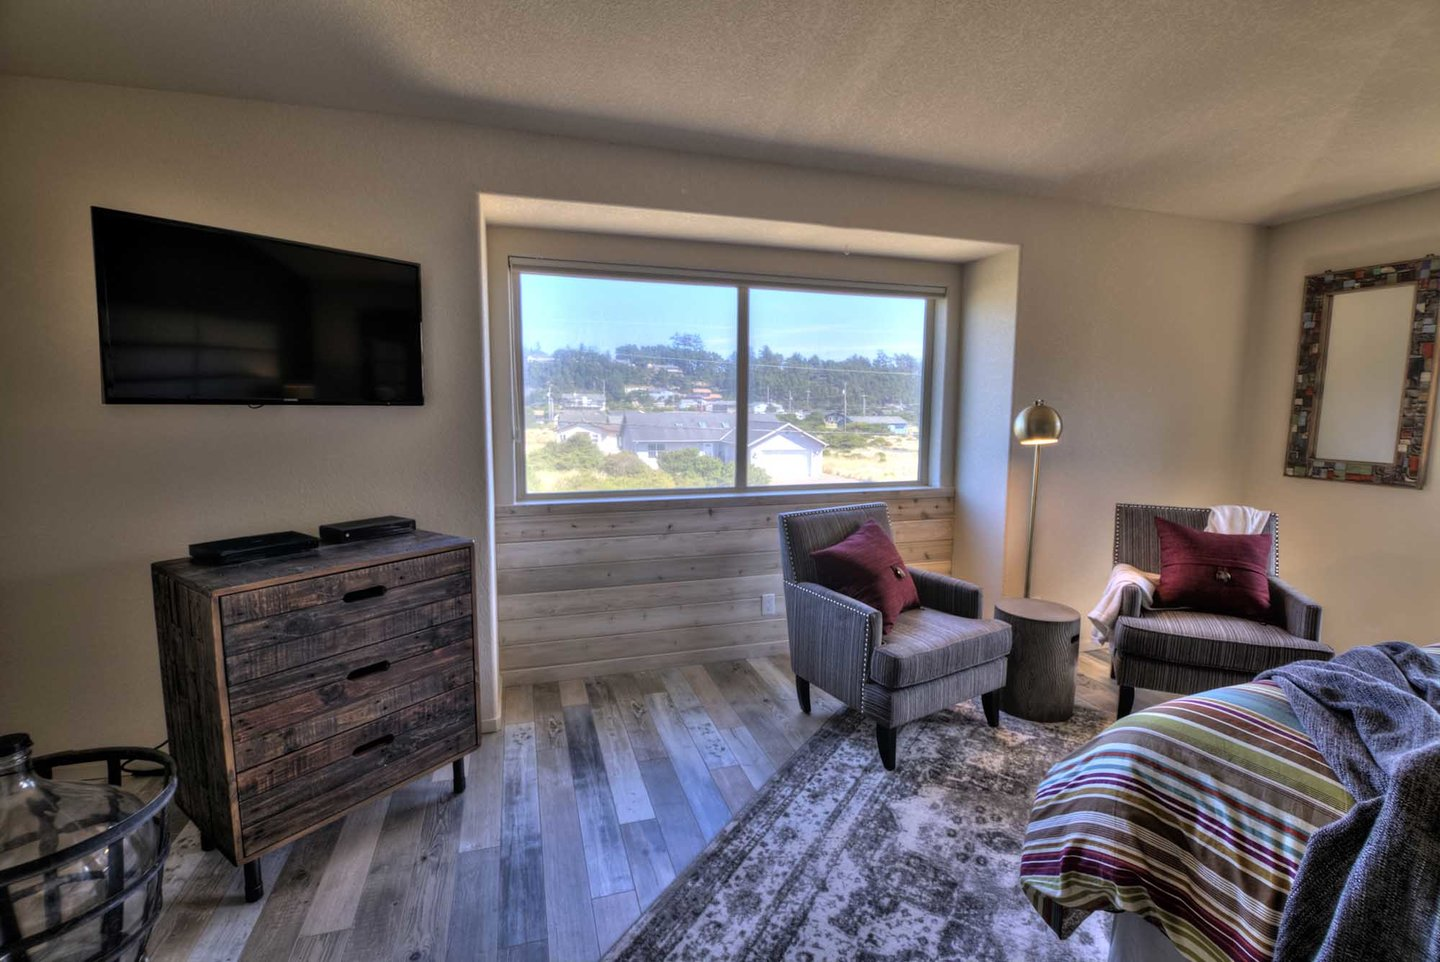 Distinctive comfortable furnishings and bedding, HD TV, and a scenic view.